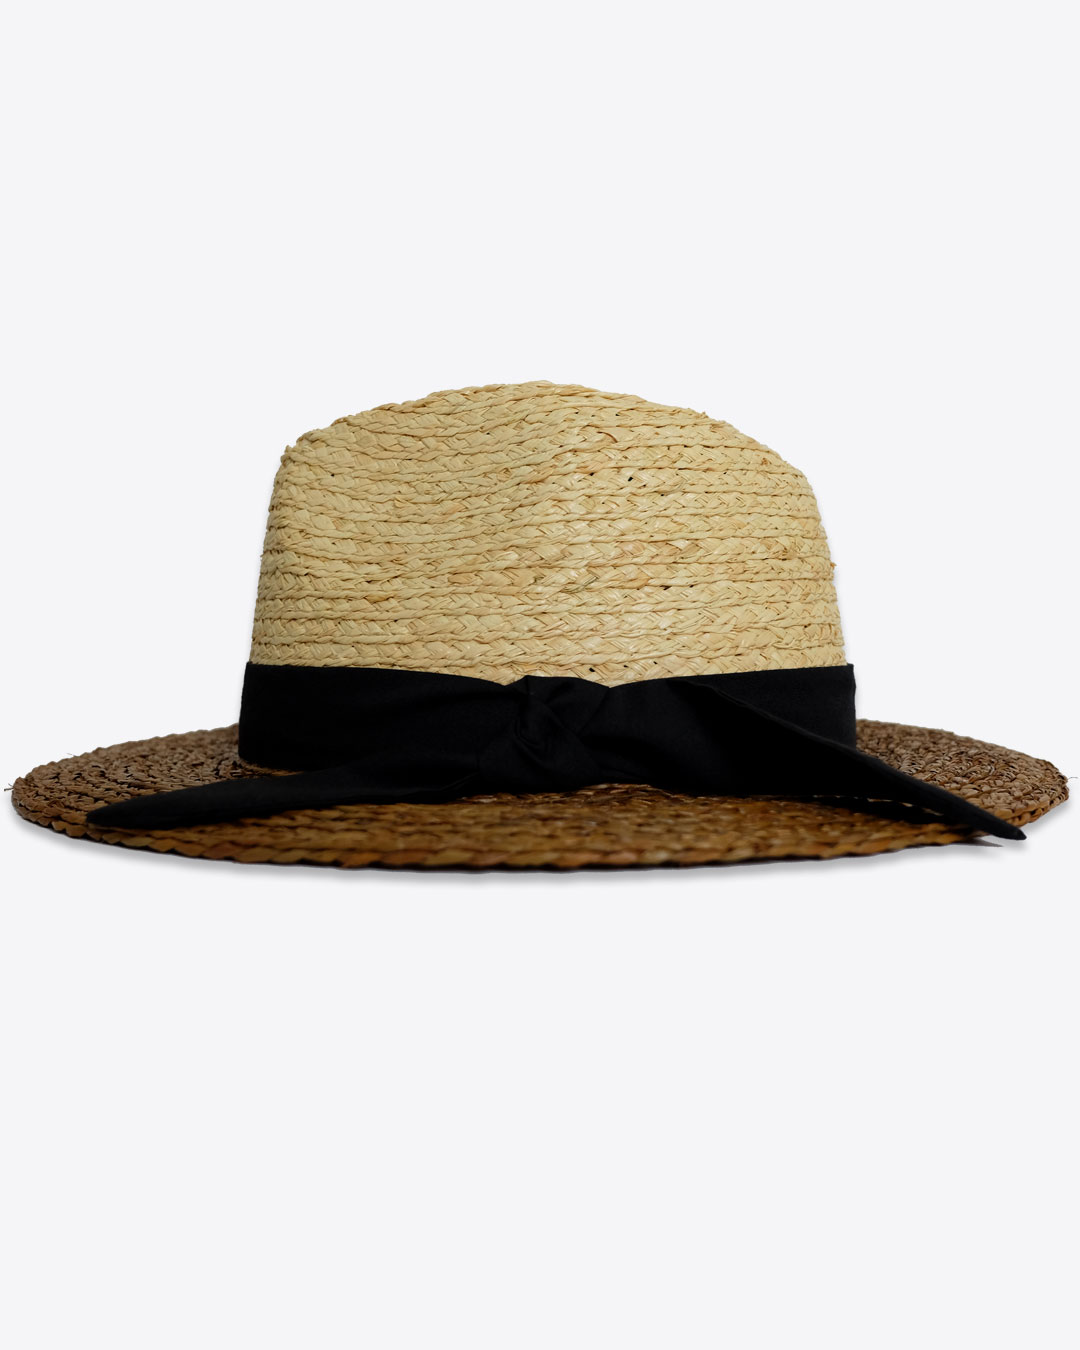 URBANE-MUSE-CHRIS-SMITH-TWO-TONE-STRAW-HAT